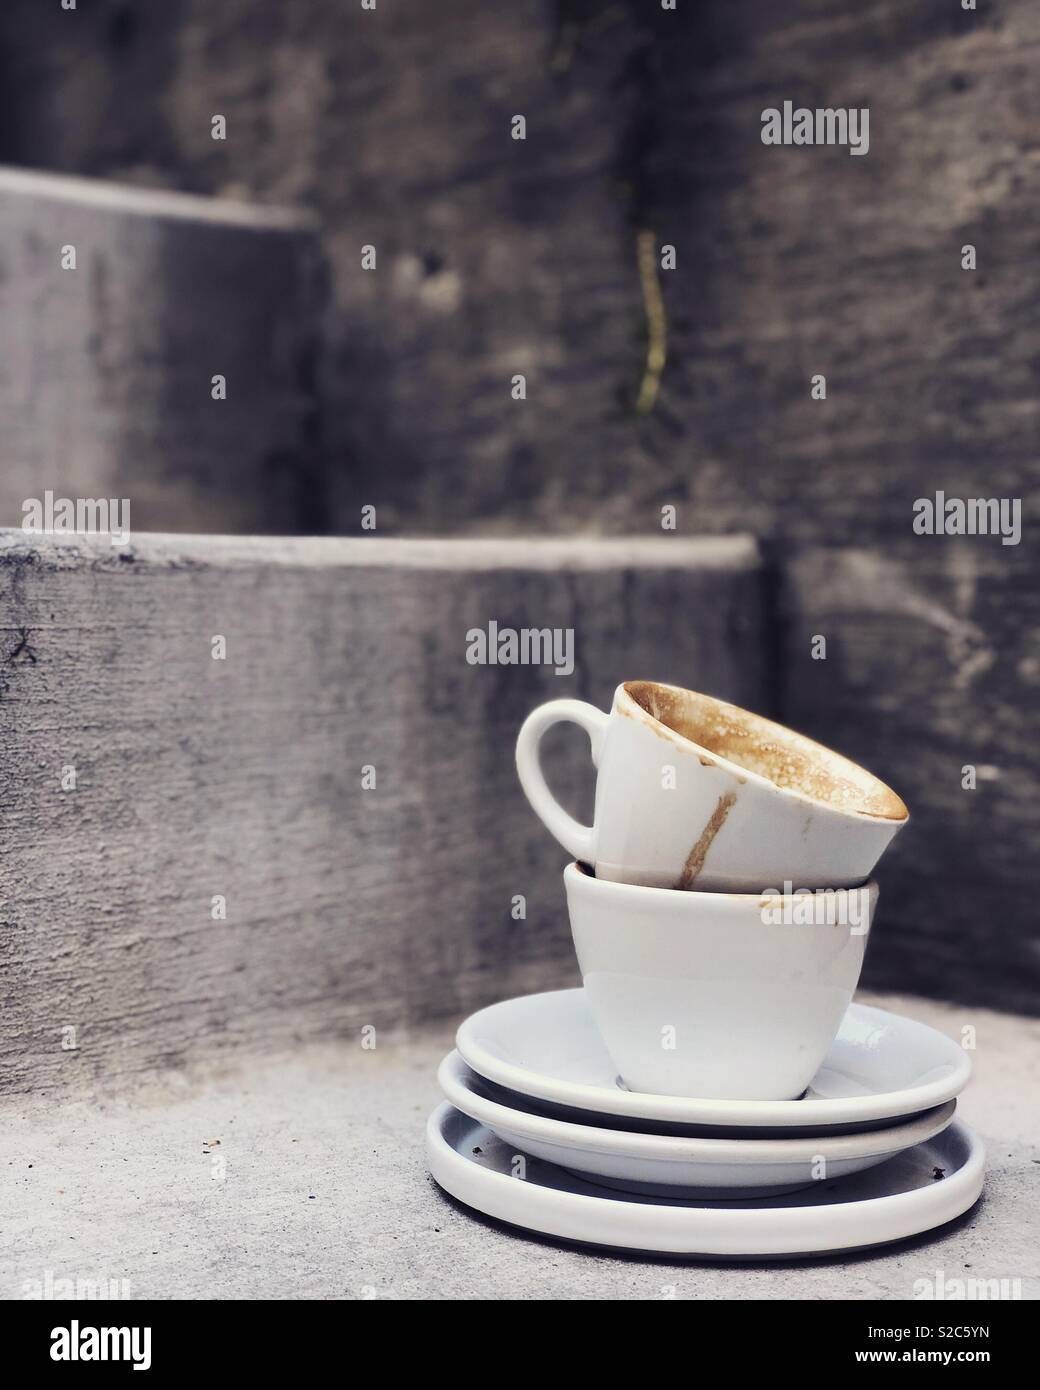 Empty coffee cups - Stock Image